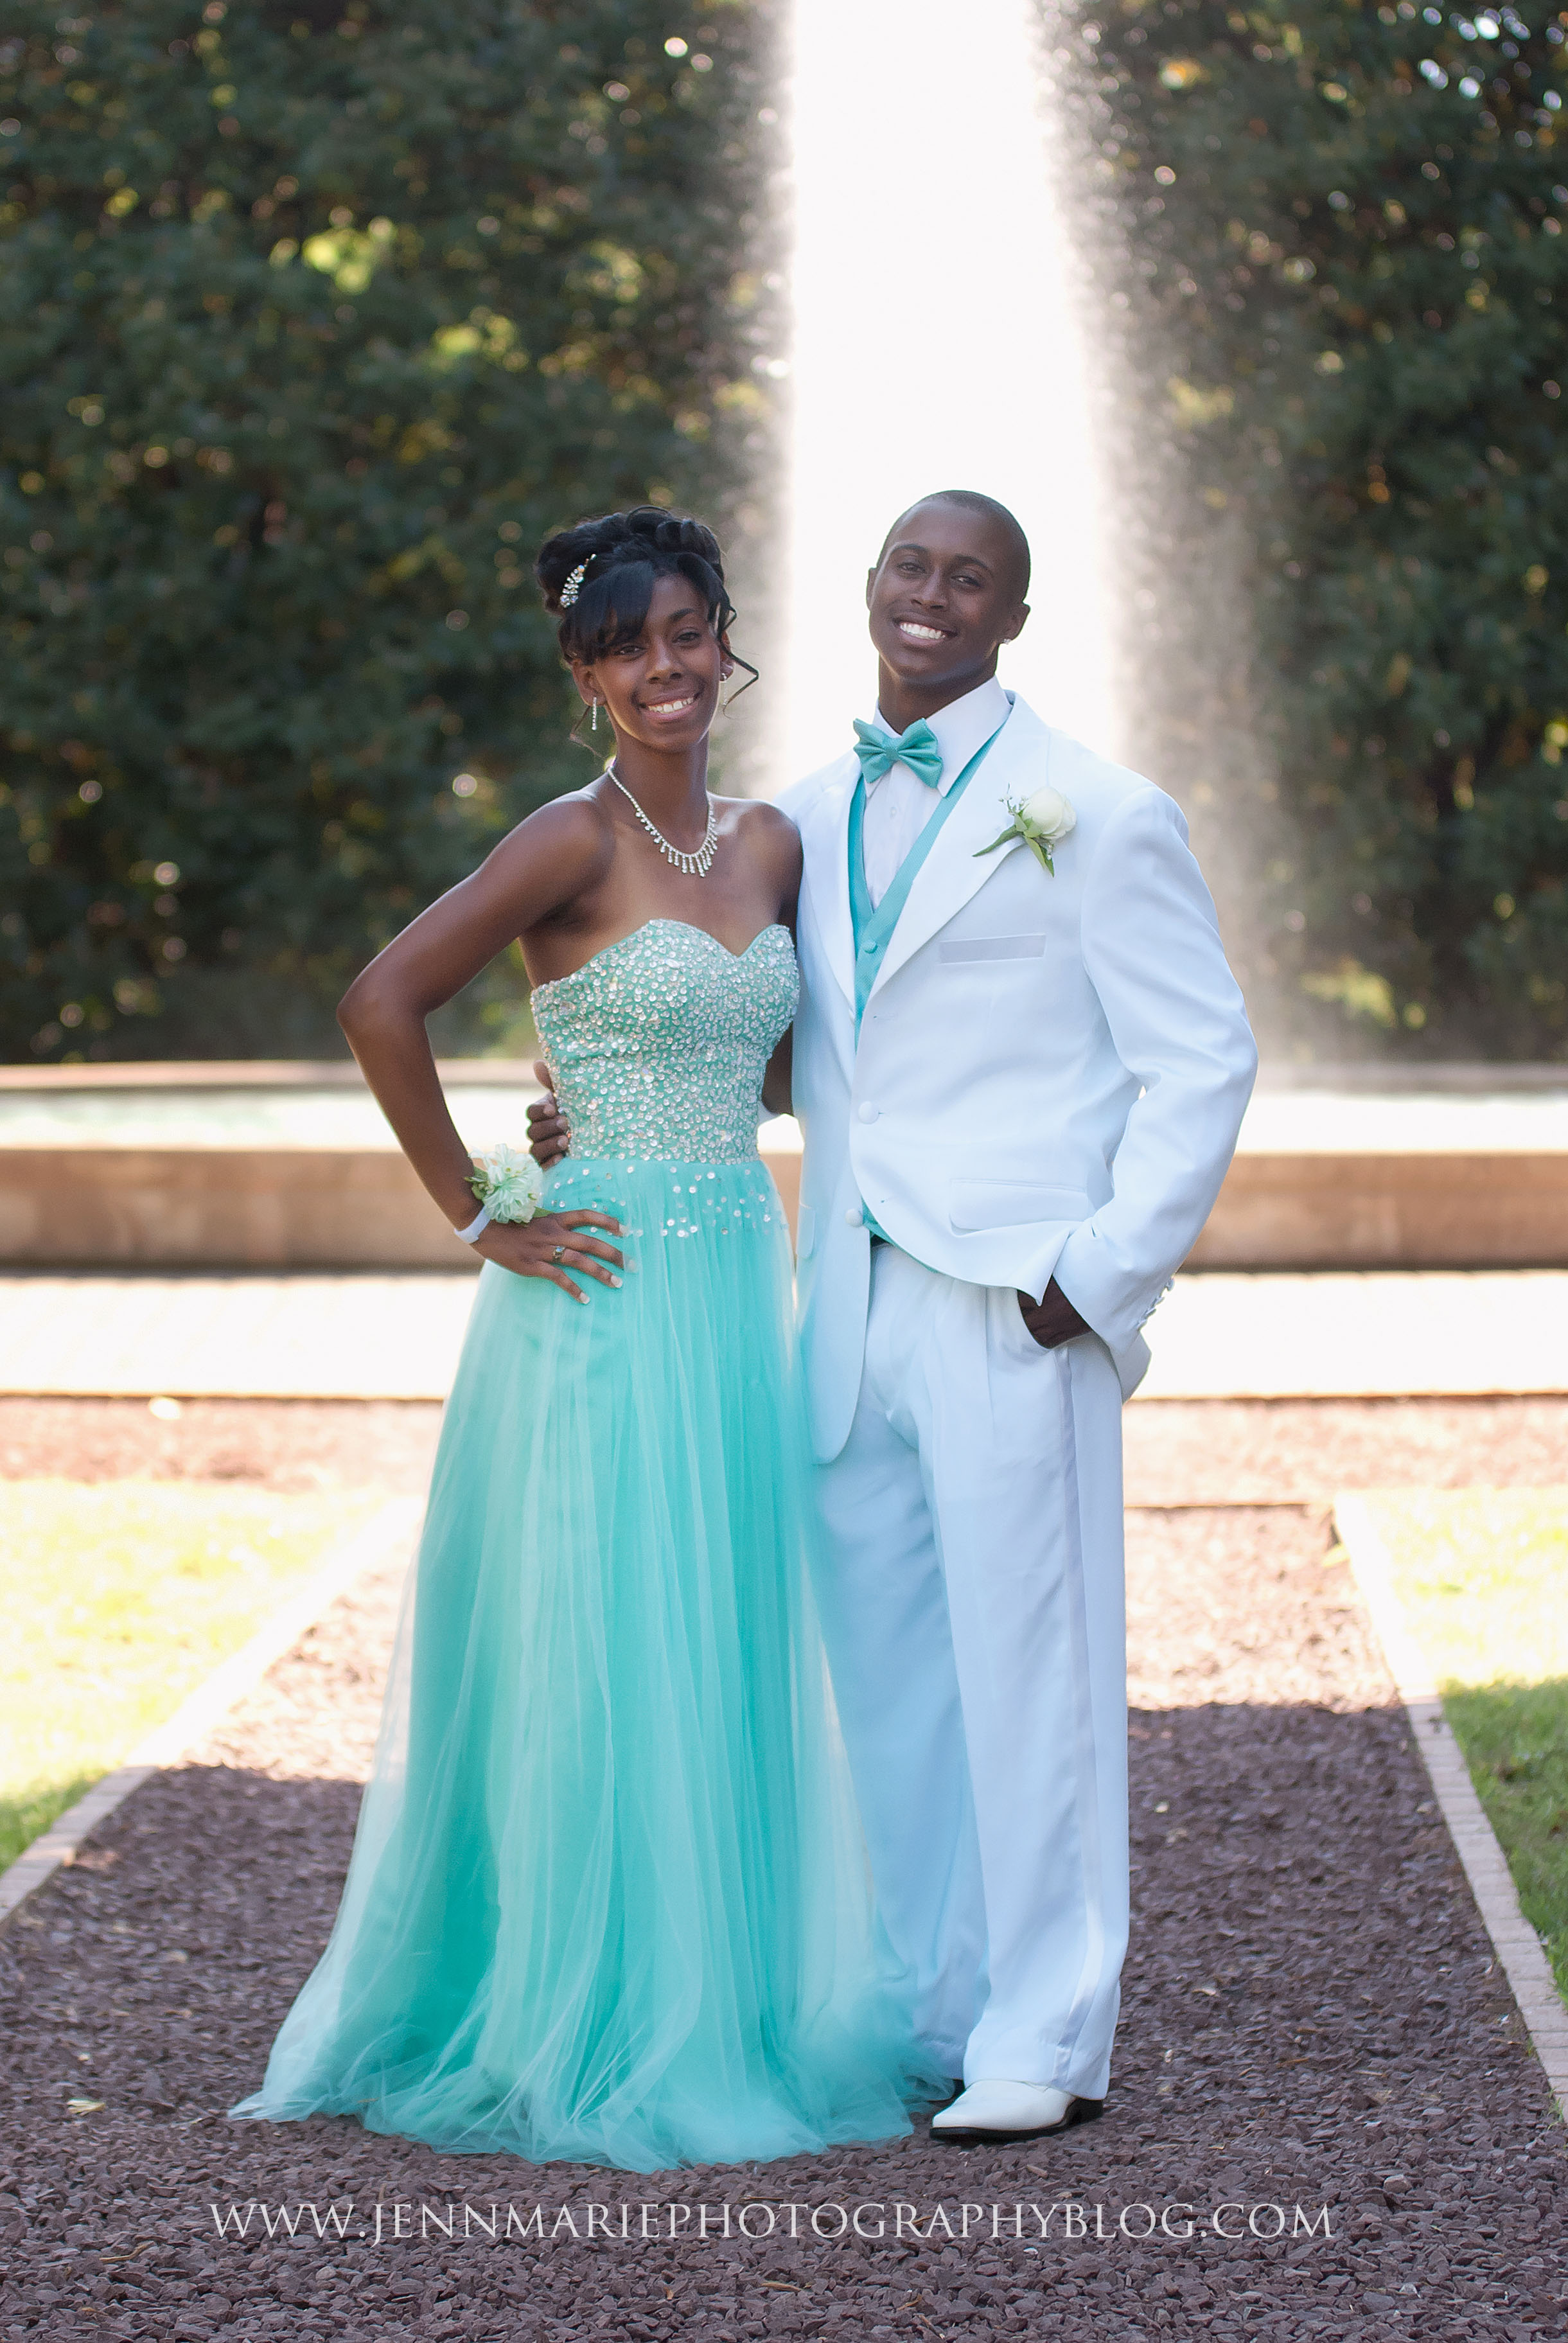 Prom – JennMarie Photography – The Blog